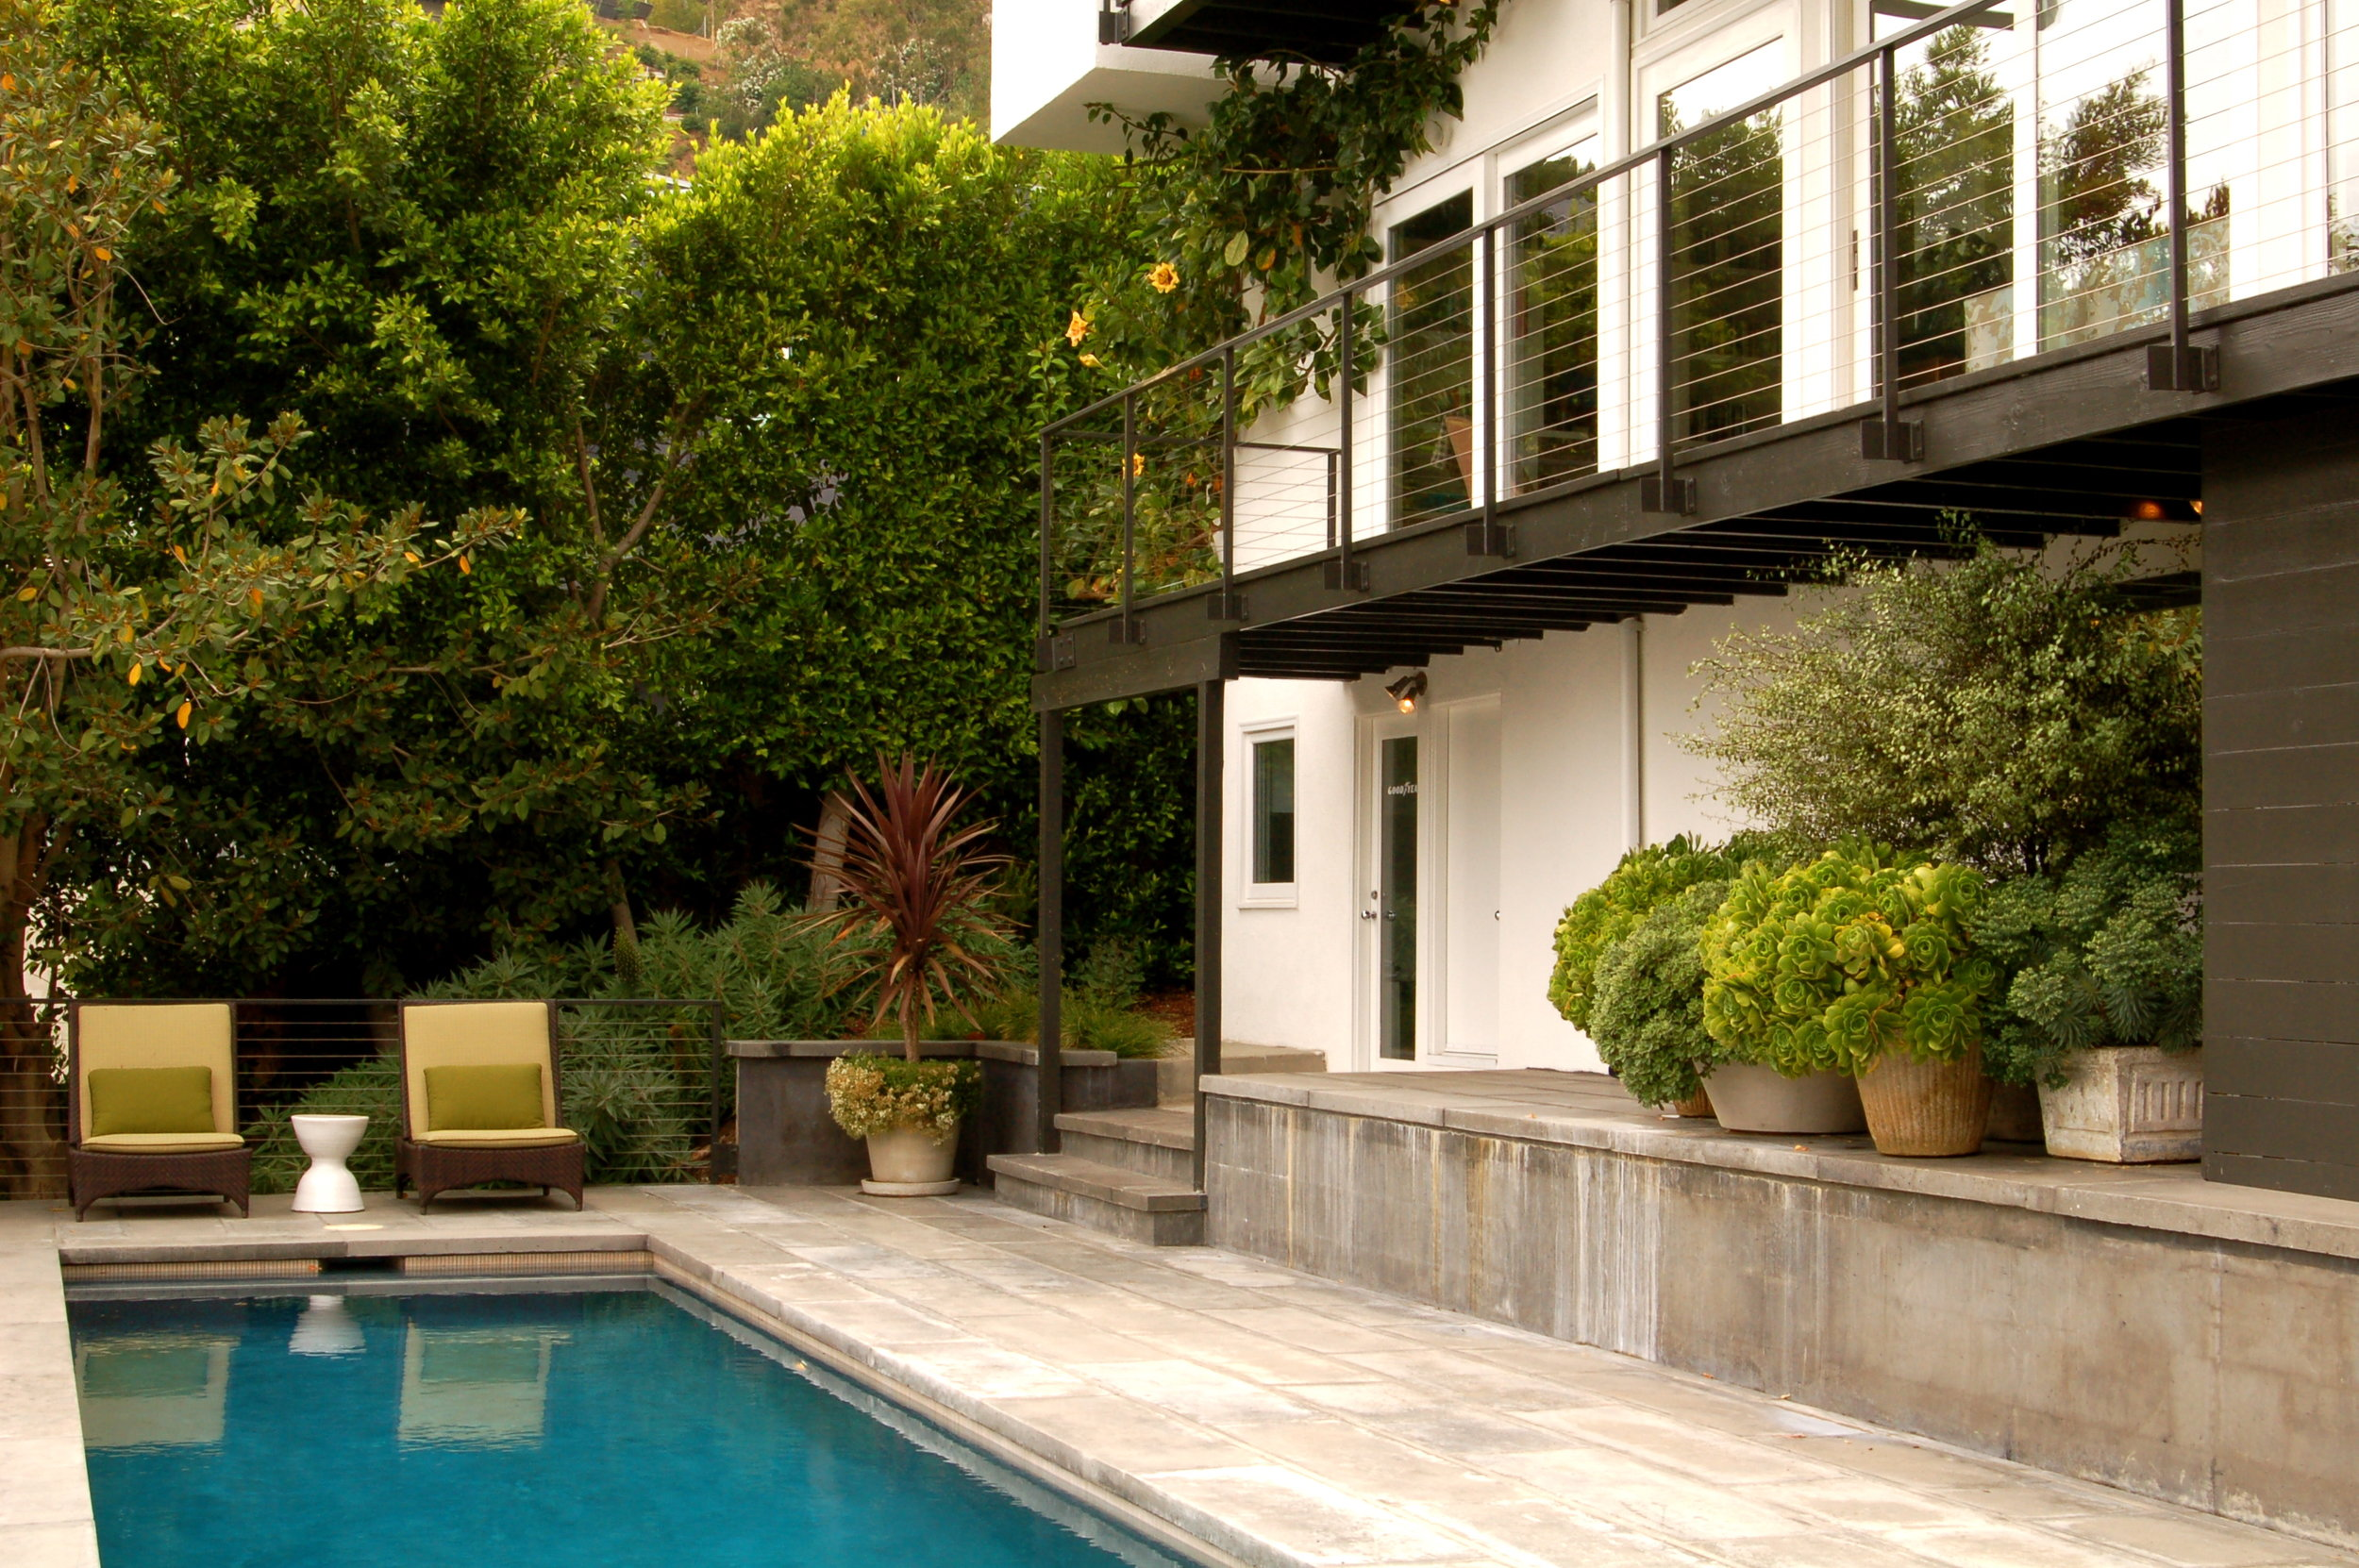 back of house pool chairs and planter.jpg